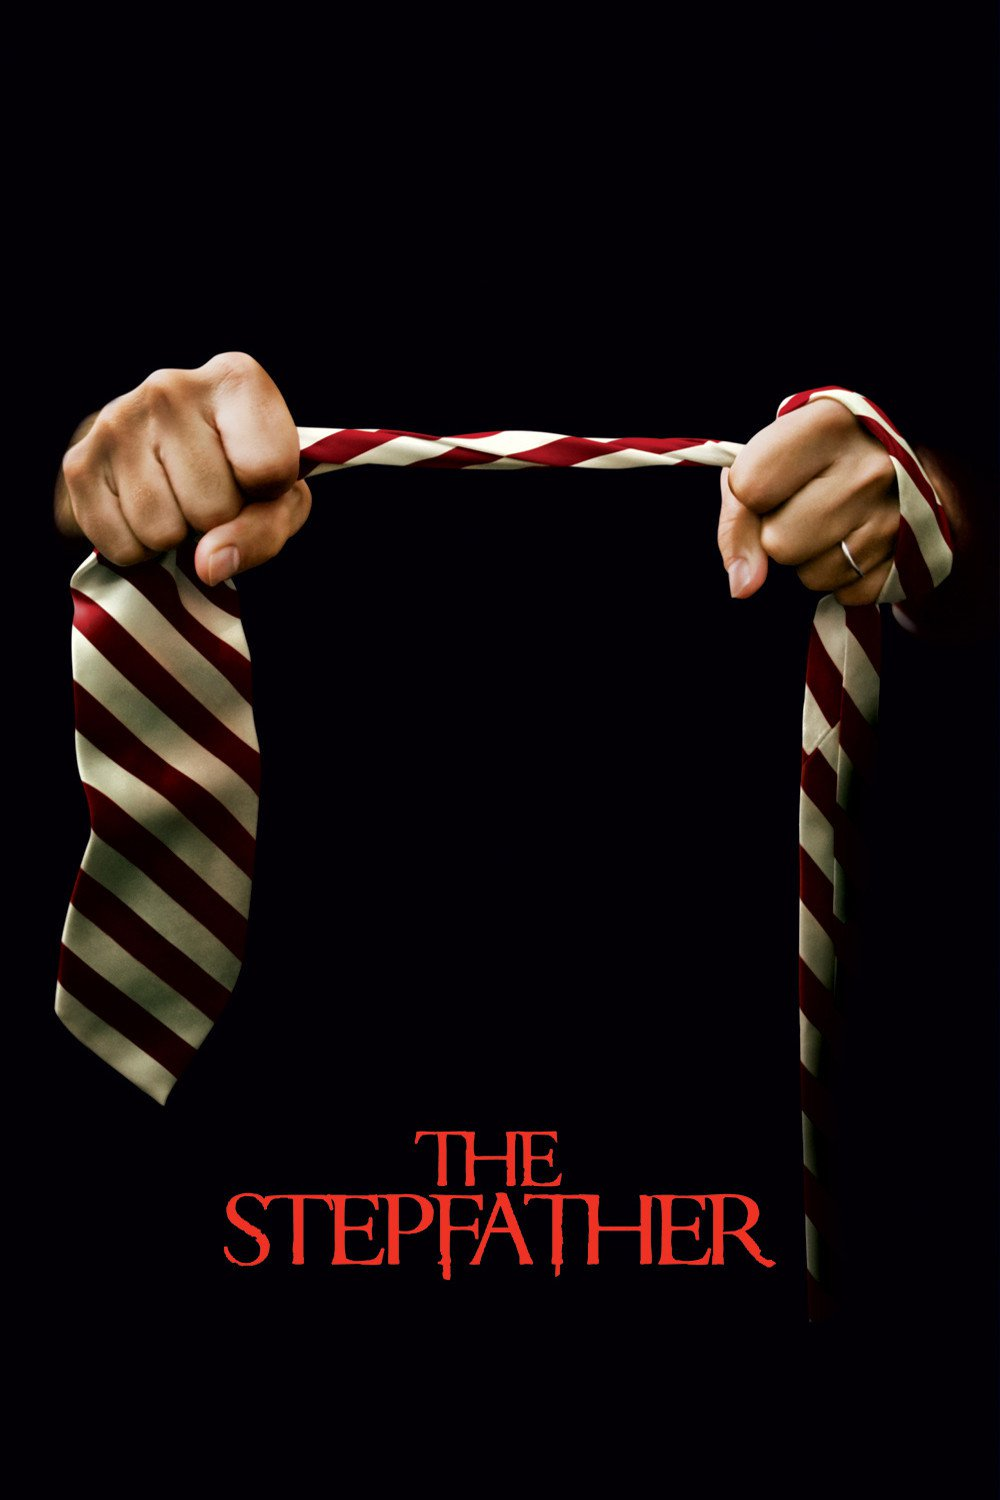 The Stepfather, 2009